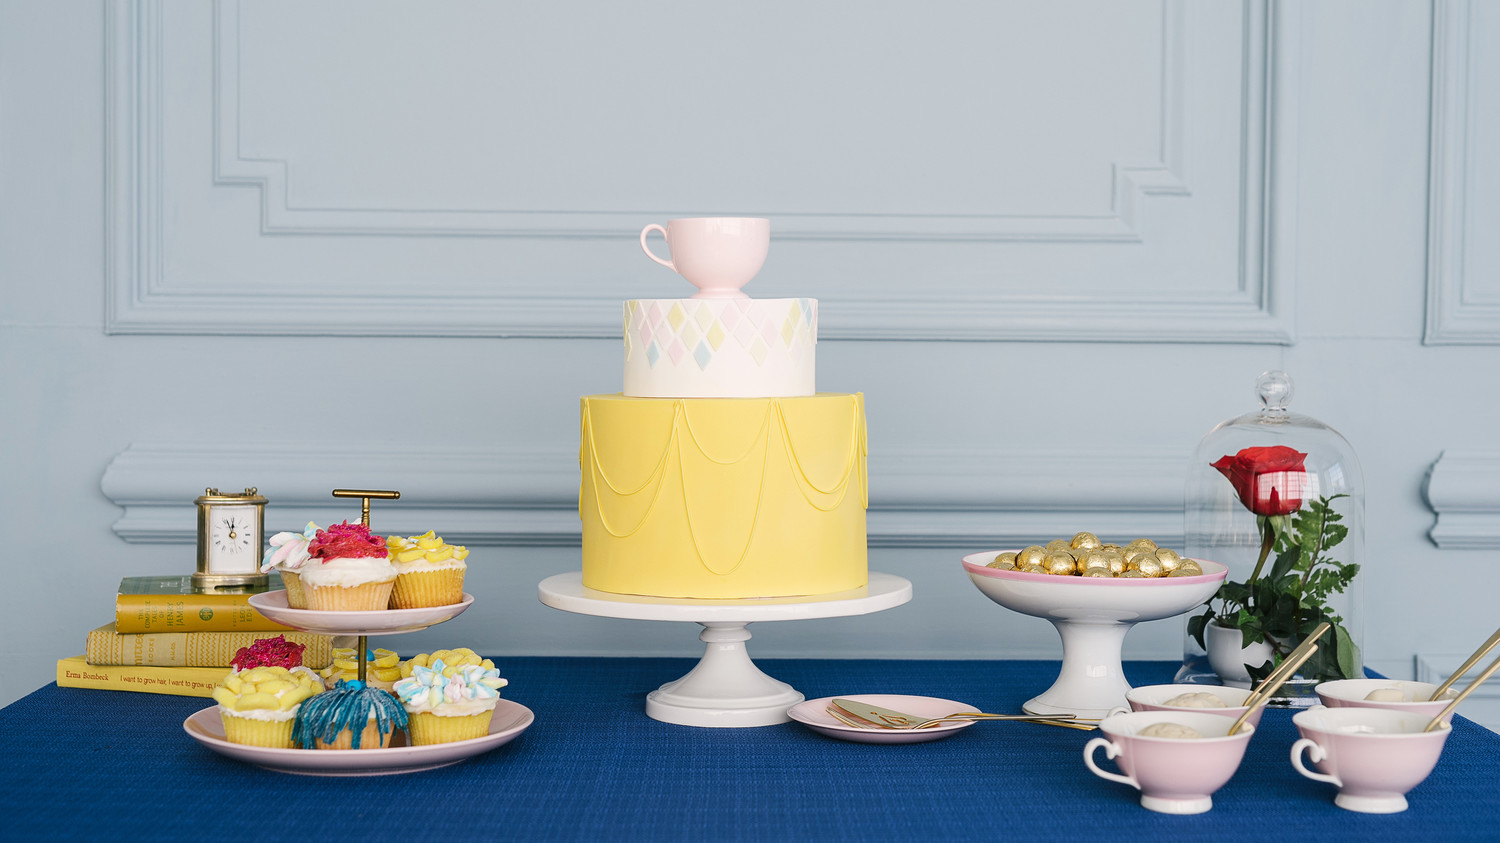 Captivating Beauty And The Beast Baby Shower Desserts Cake